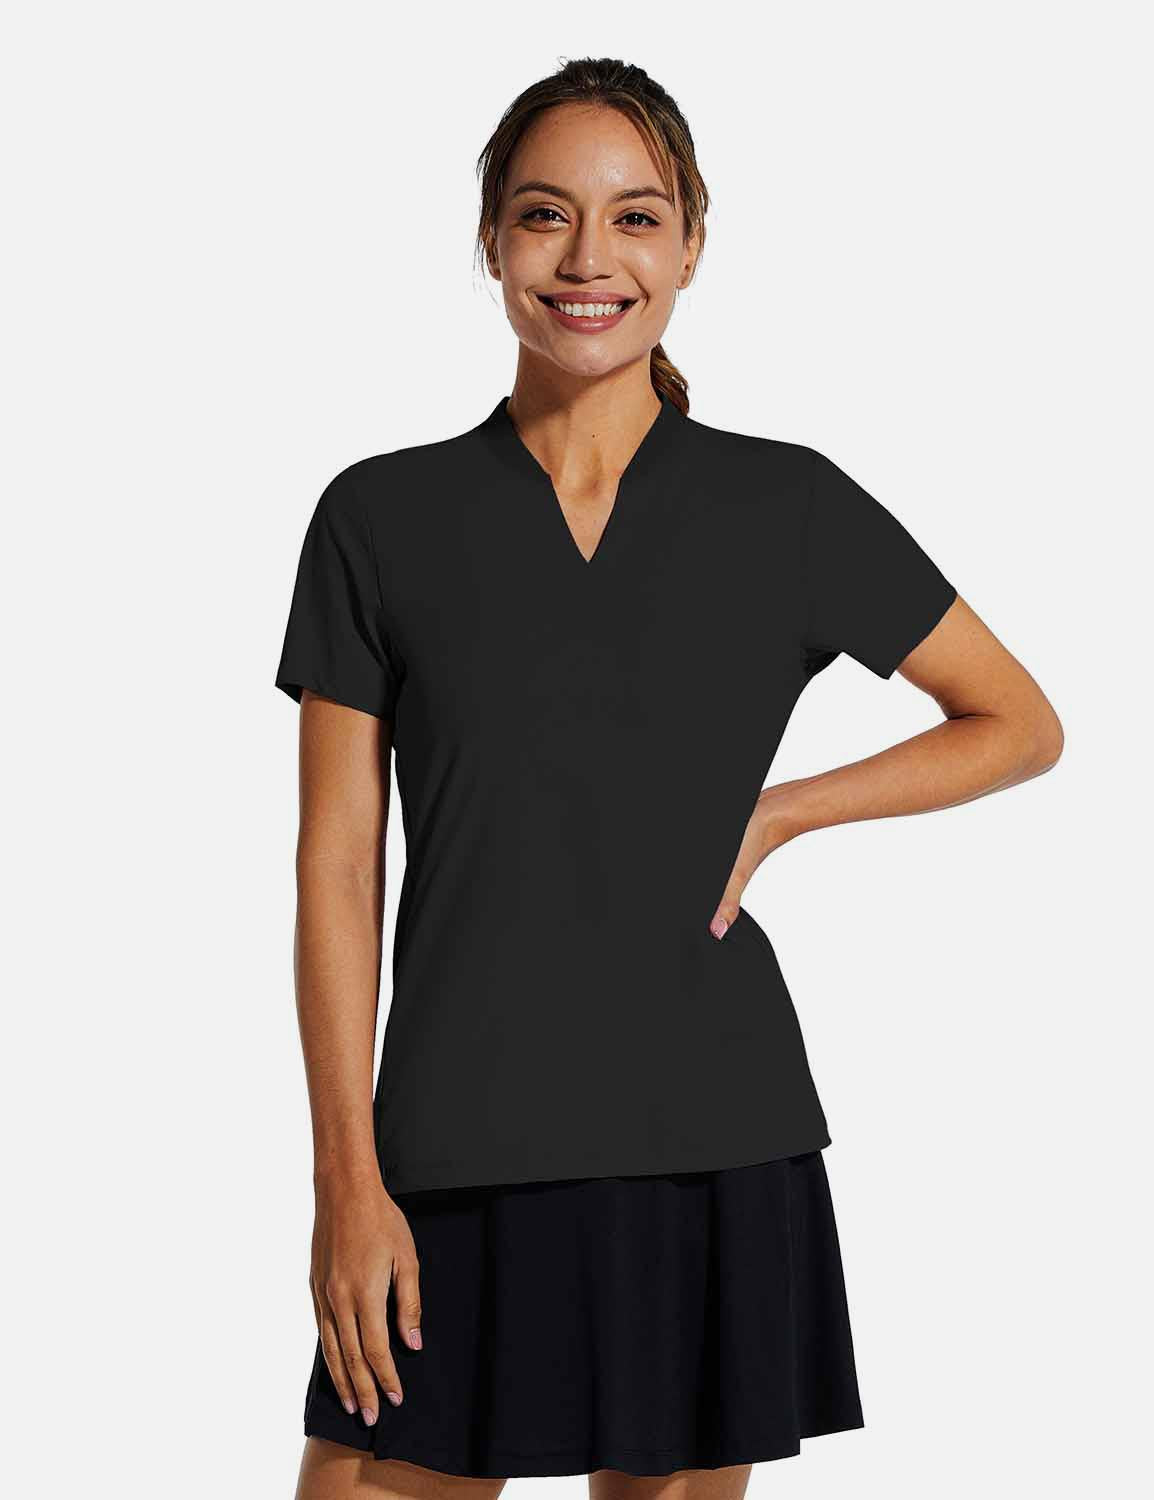 Baleaf Womens UPF50+ Short Sleeved Collarless V Neck Shirts Black front